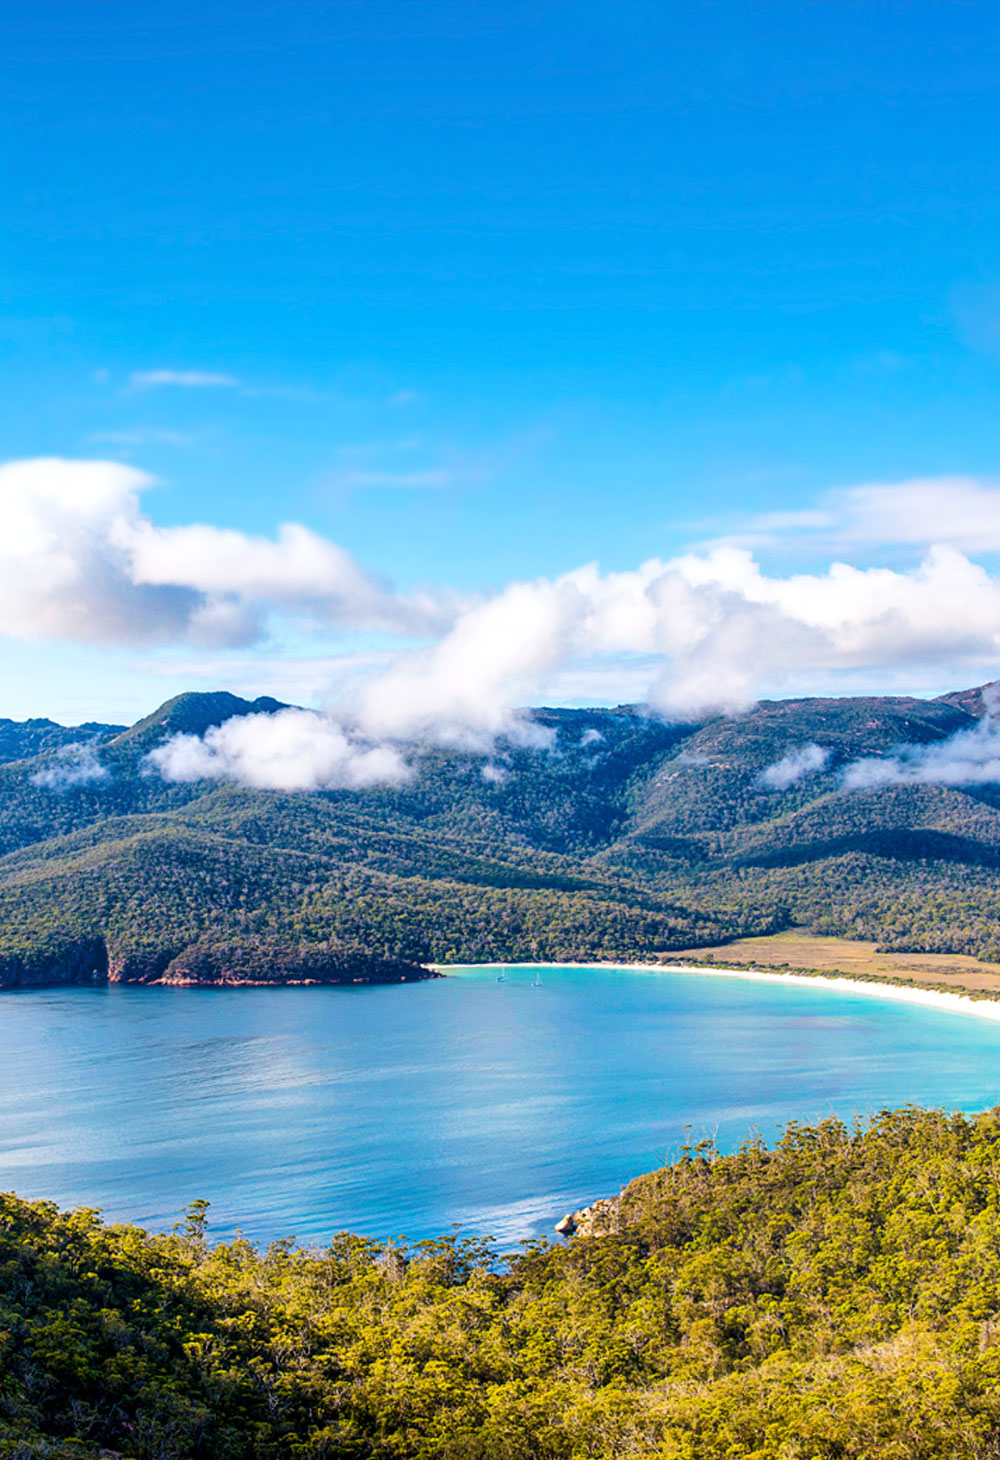 View of the water in Wineglass Bay, Tasmania.